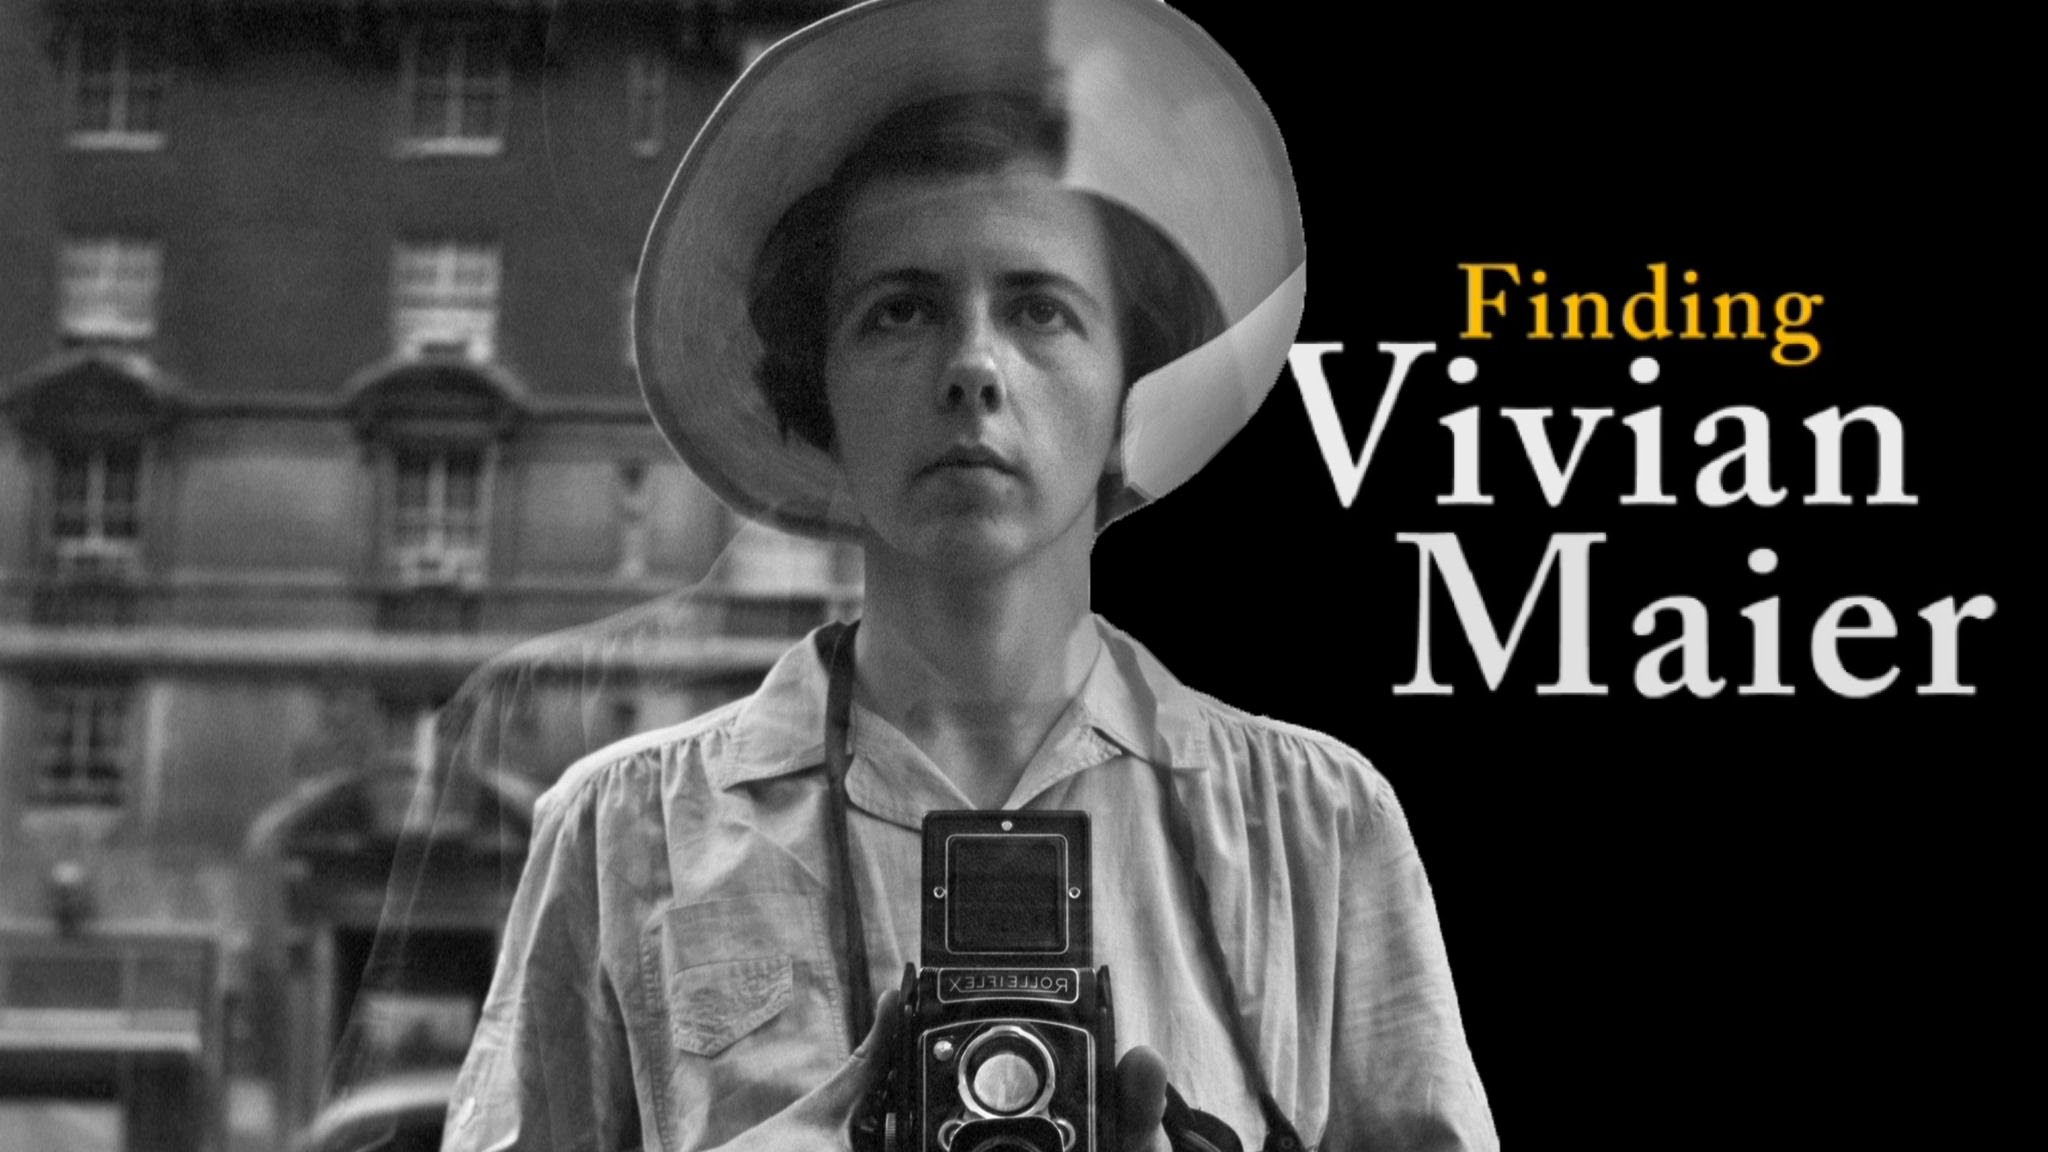 finding vivian maier Now considered one of the 20th century's greatest street photographers, vivian  maier spent her life as a nanny, secretly taking over 100000 photographs.